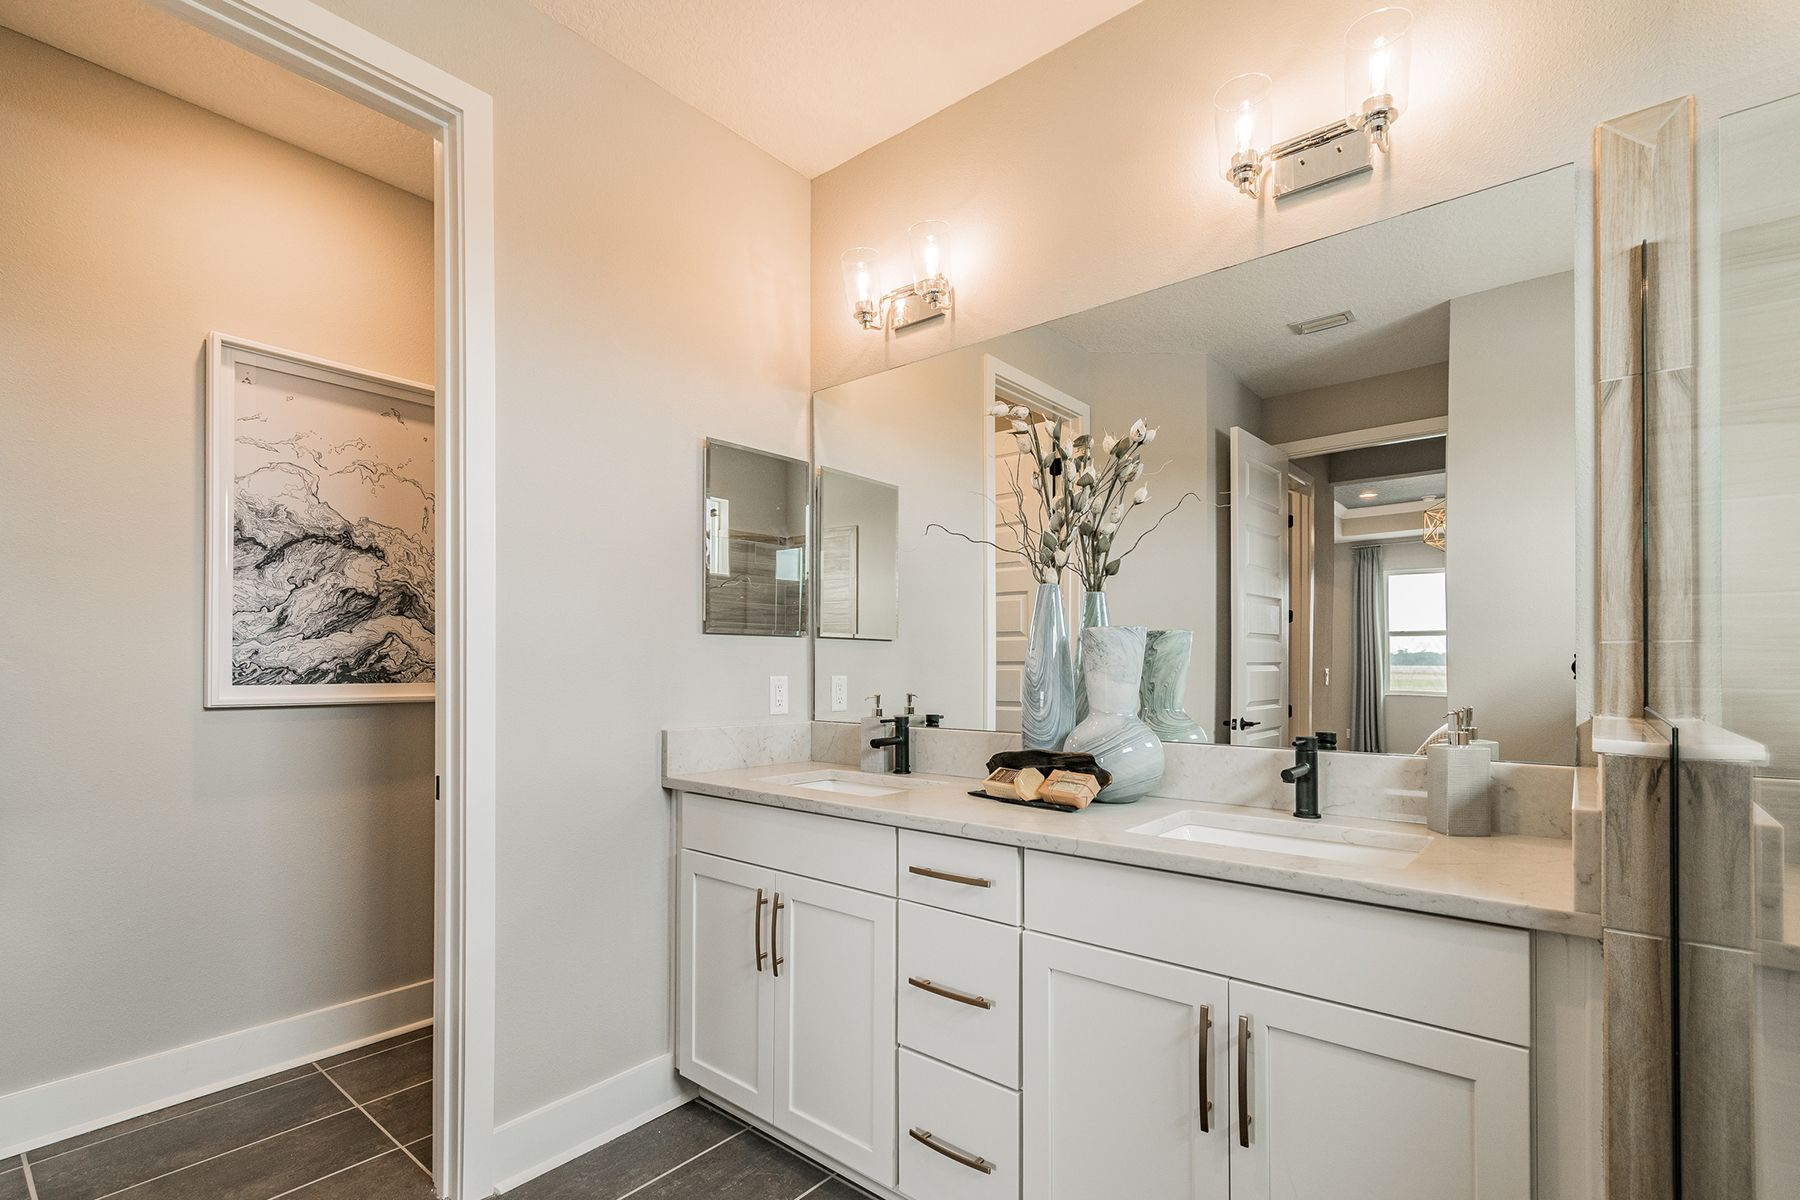 Bathroom featured in the Amelia By M/I Homes in Sarasota-Bradenton, FL